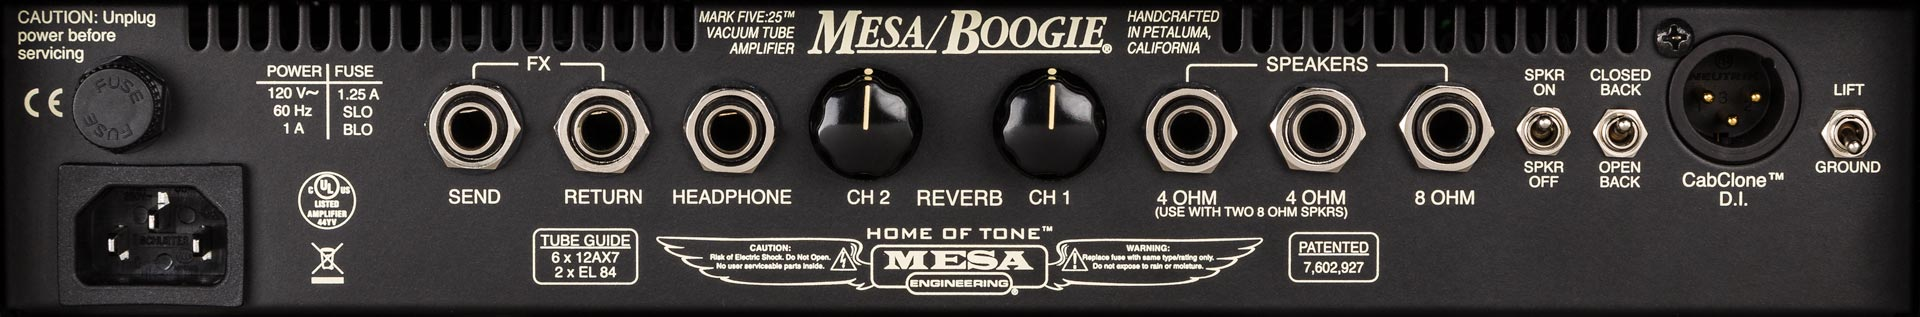 Mesa Boogie Mark Five 25 1x10 Combo Rear Panel